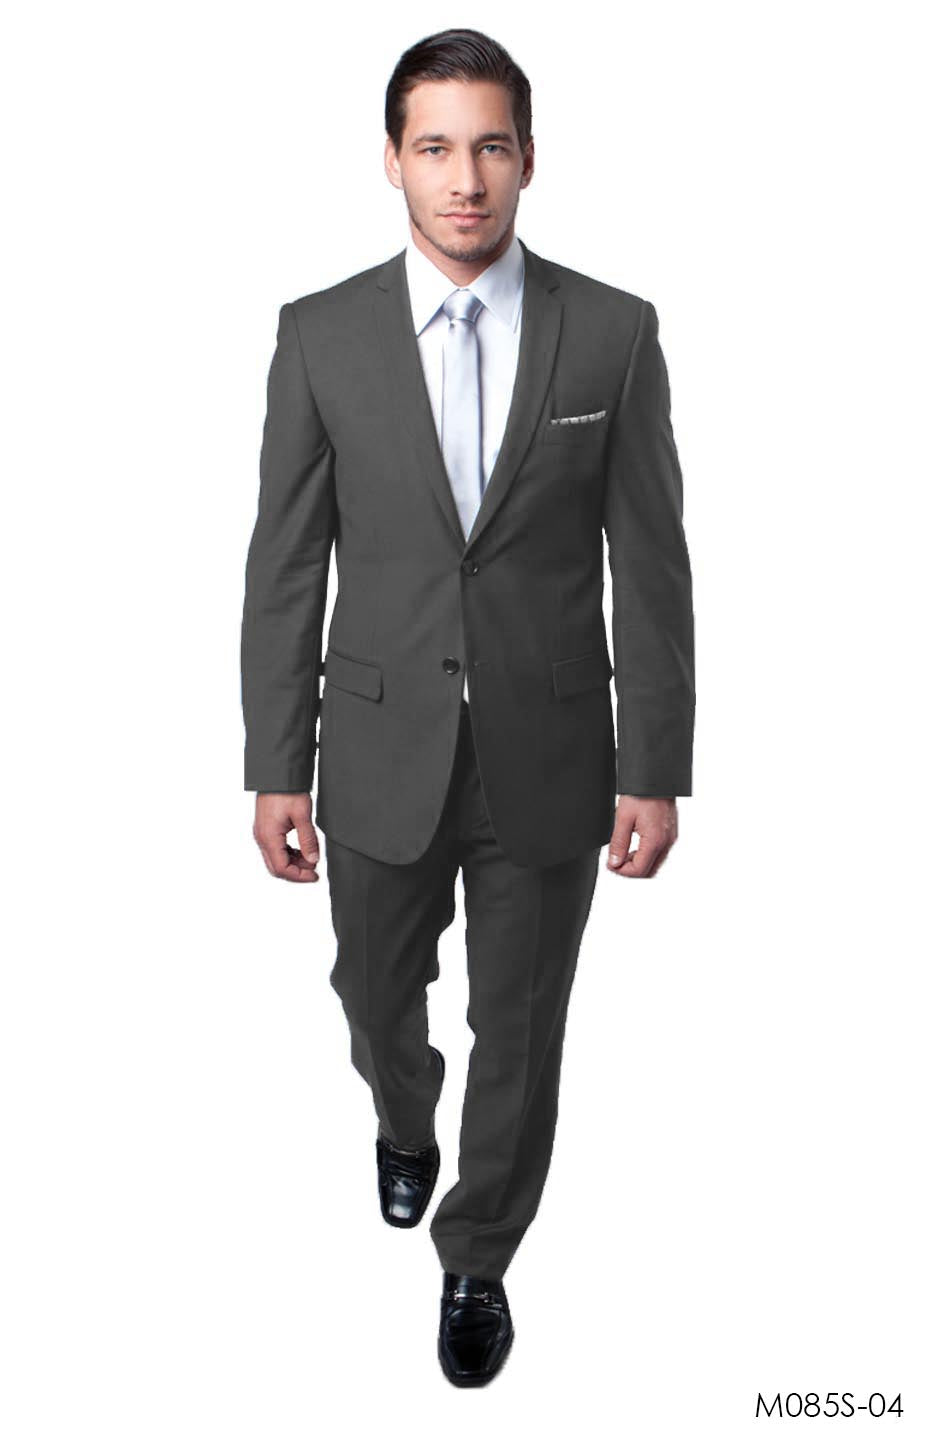 Grey Suit For Men Formal Suits For All Ocassions M085S-04